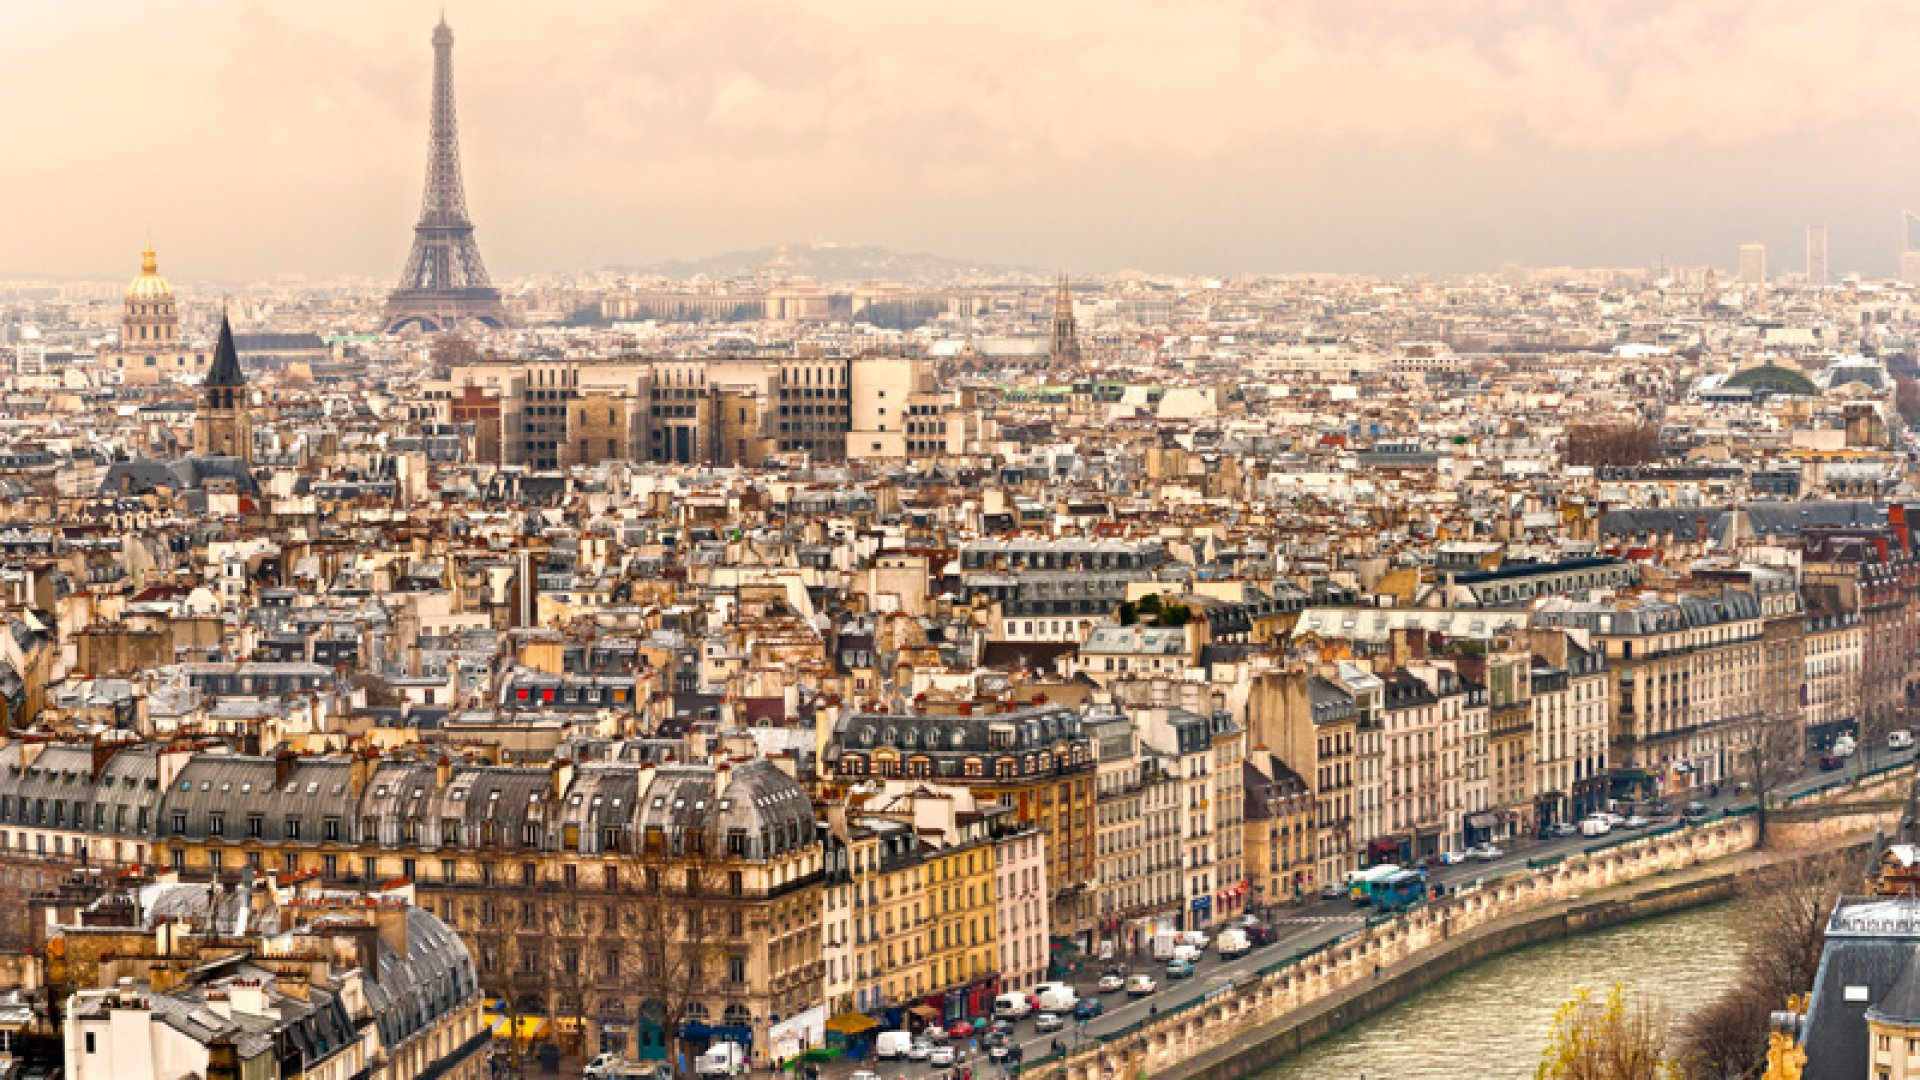 Standing Out in the City of Lights: Top 10 Fastest-Growing Private Companies in Paris